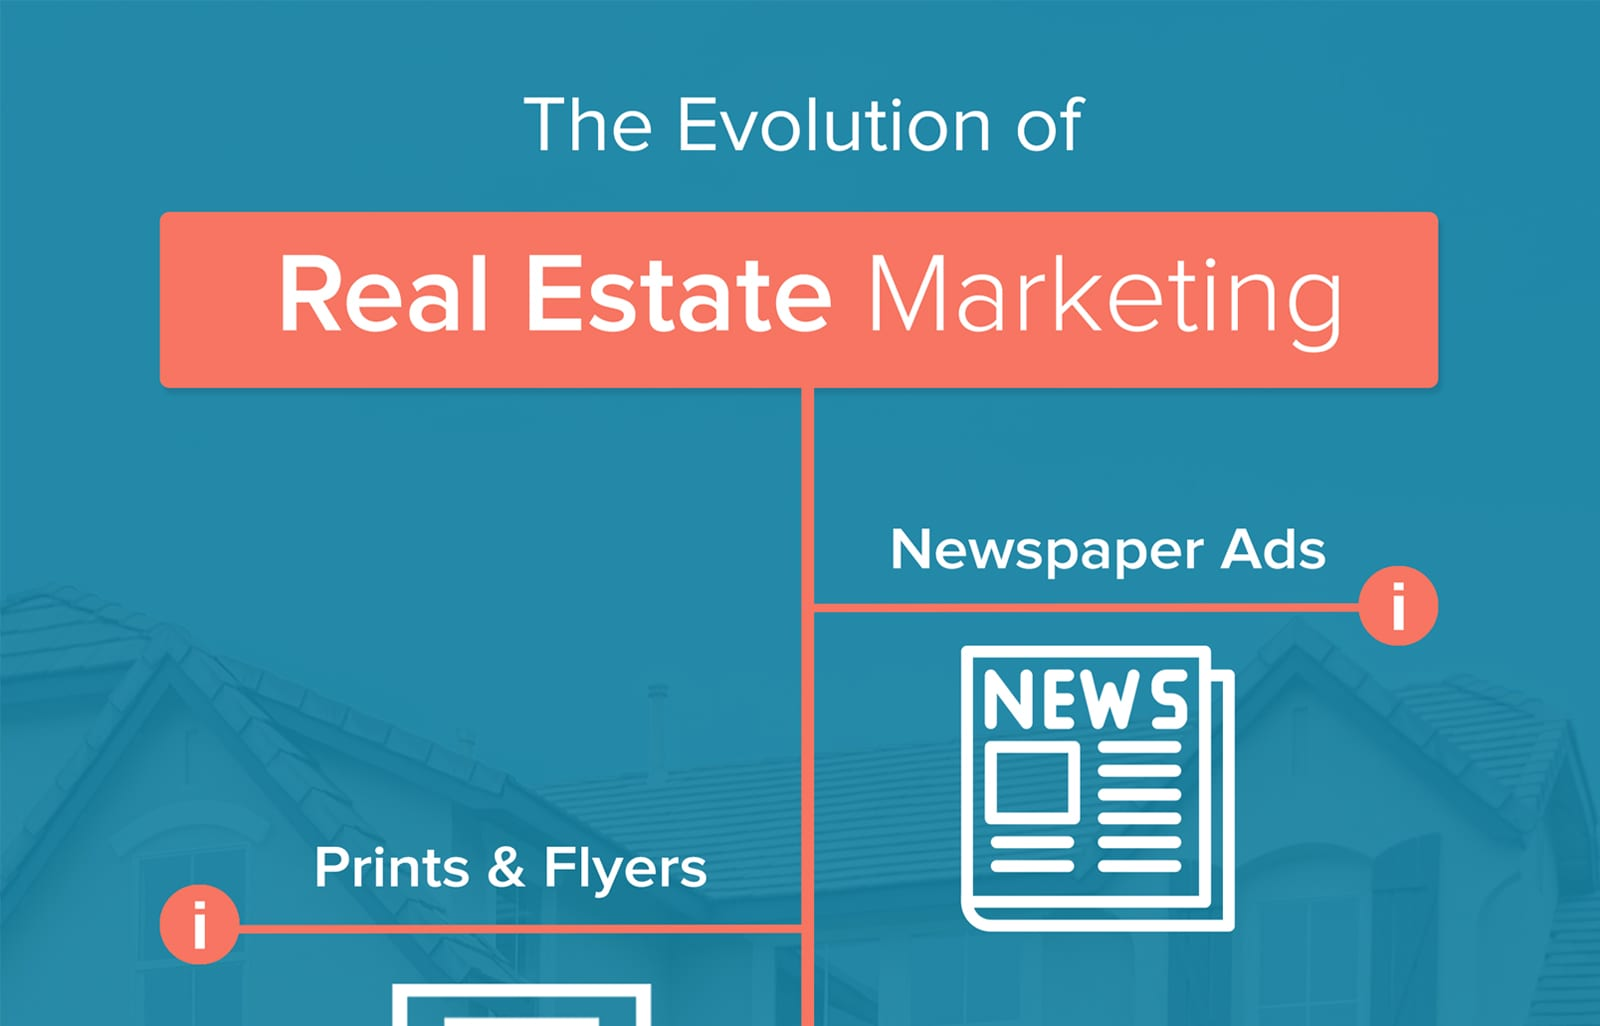 Featured Image | Real Estate Marketing Tools | Real Estate Photographer | 360 Photography Services | Real Estate Photography Services | Aerial Photography Services | Drone Photography Services